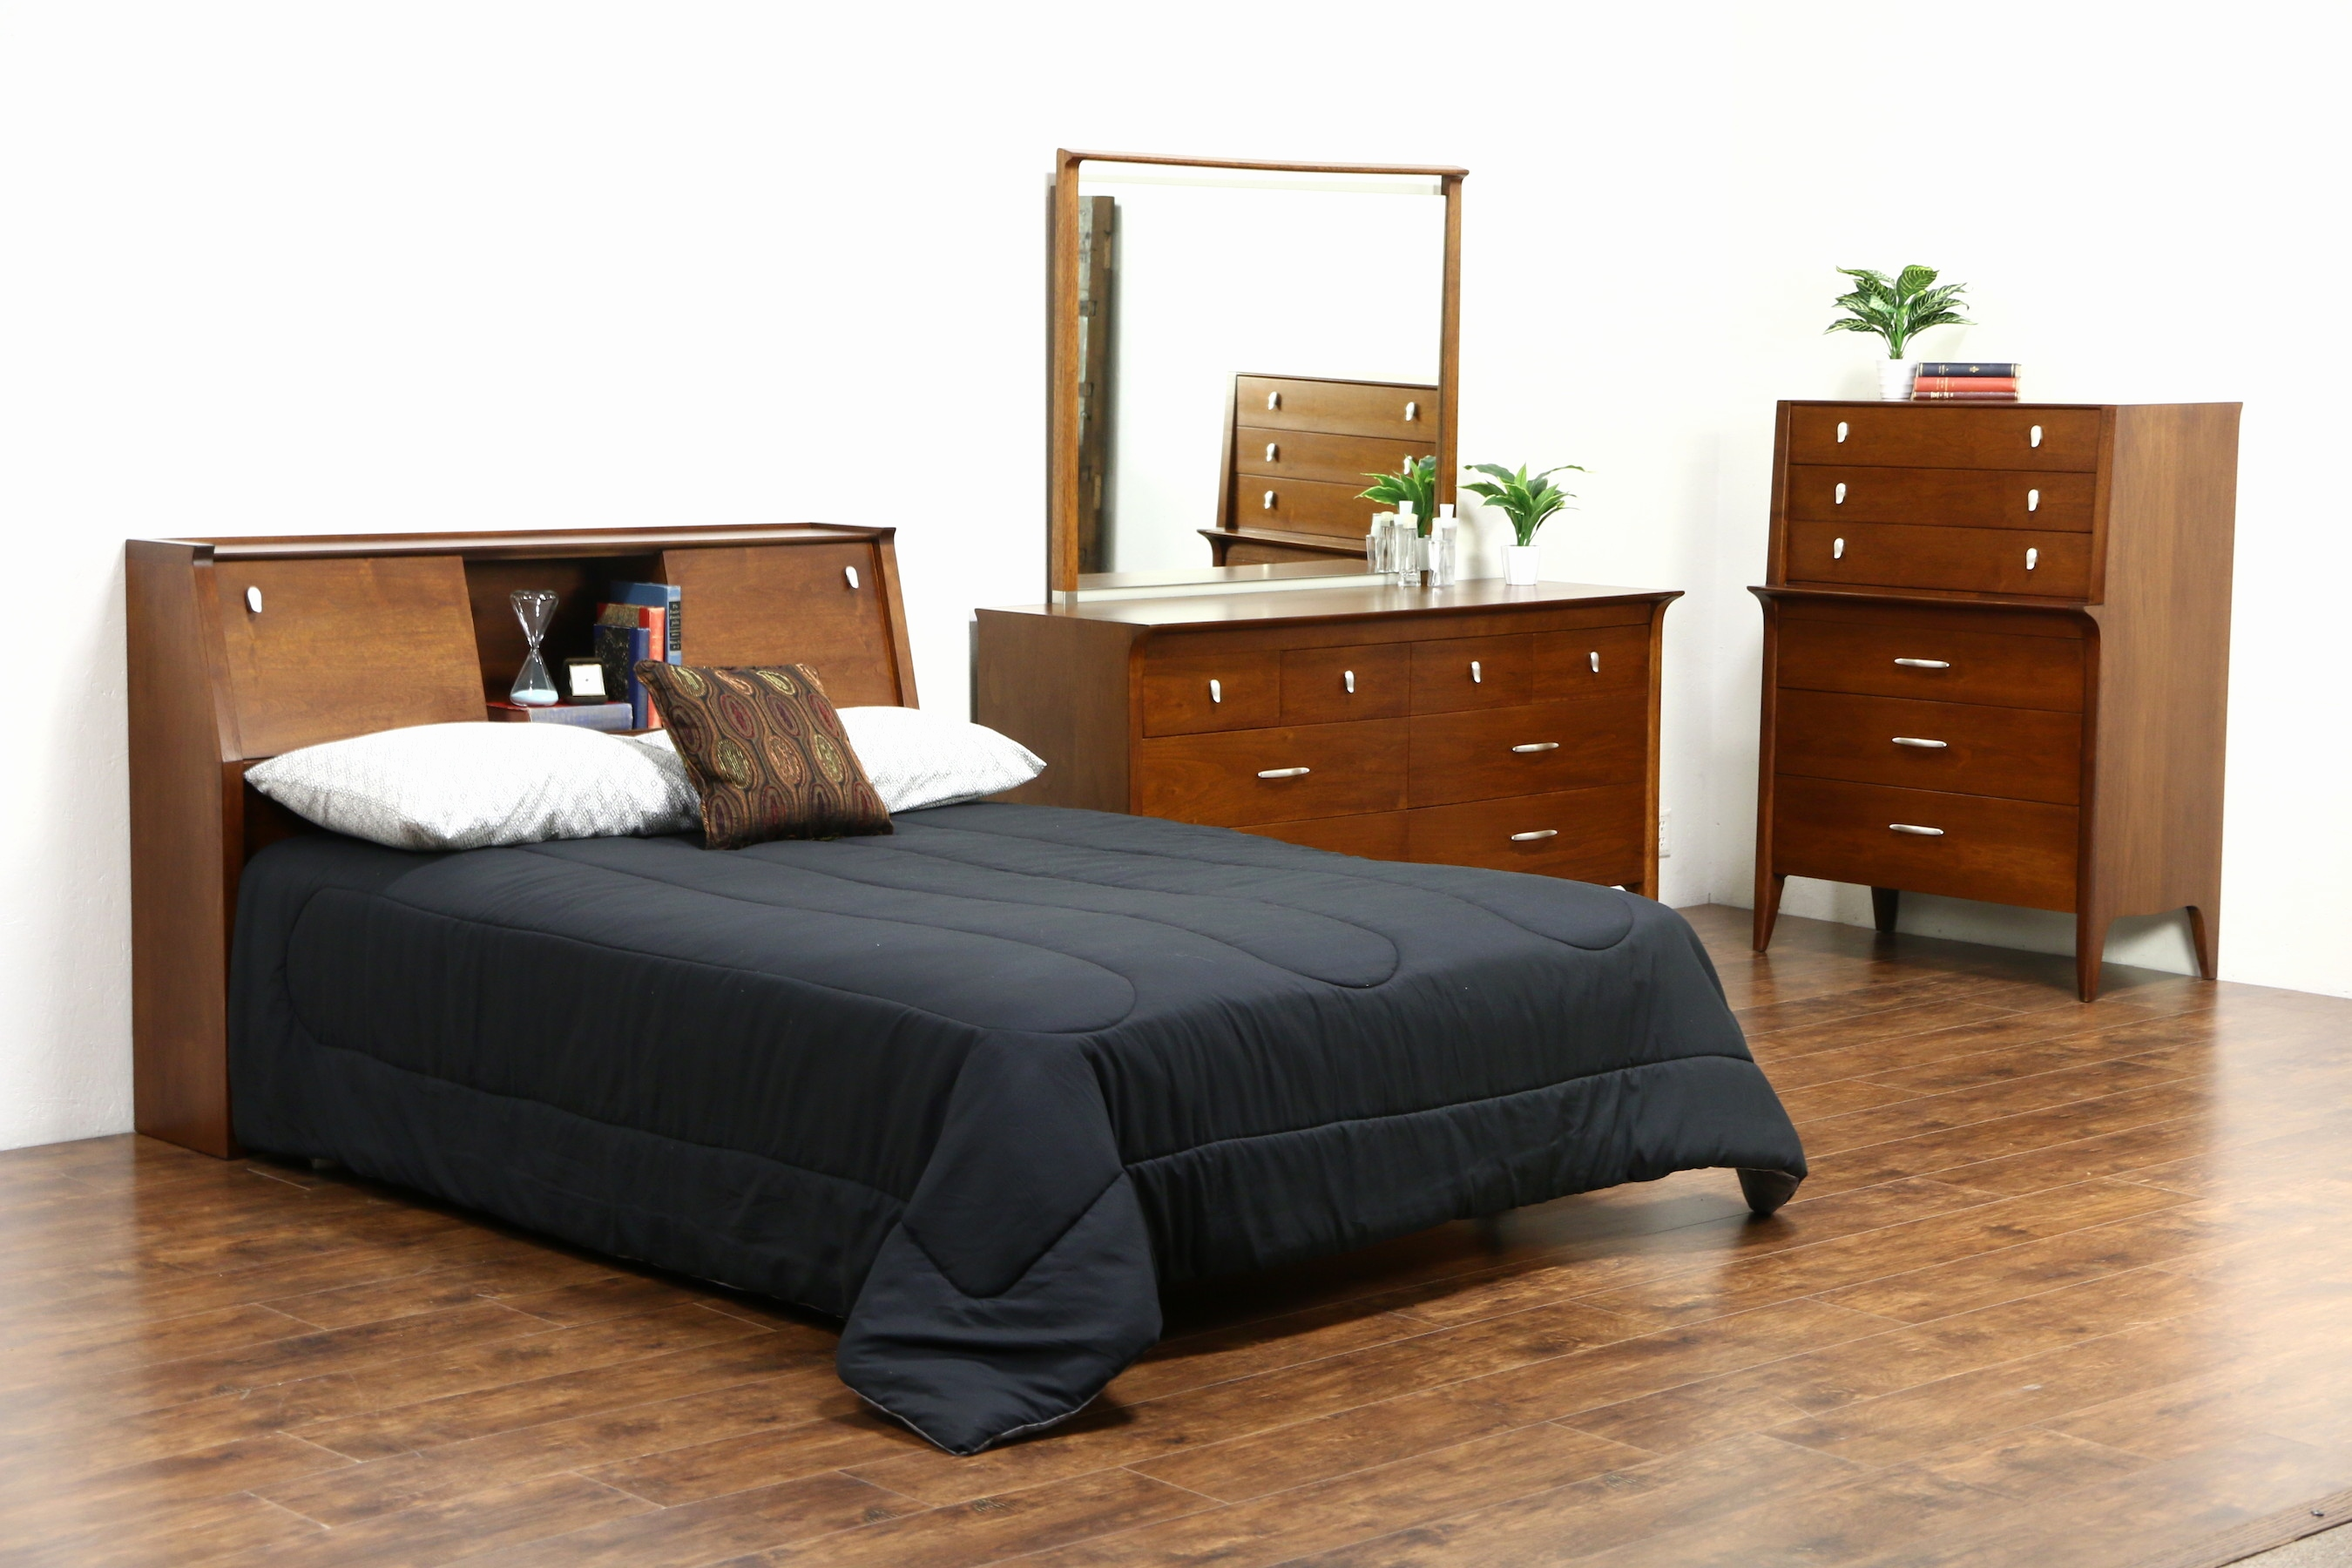 art van master bedroom furniture ideas atmosphere sets on sale mattress mattresses sectional couches apppie org